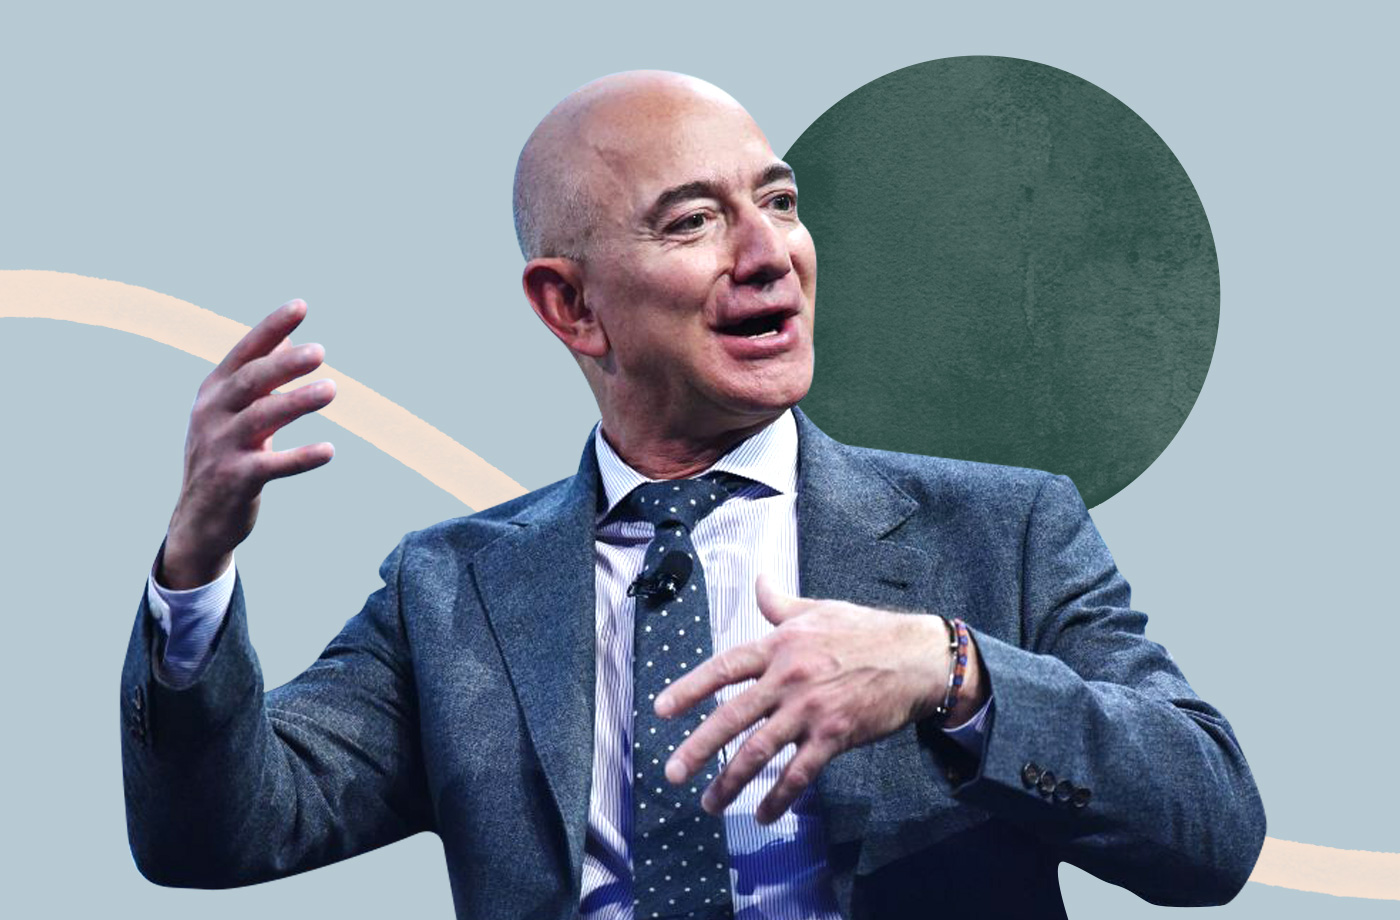 Thumbnail for $10 billion for climate change is a start, but here's why I expect more from Amazon CEO Jeff Bezos